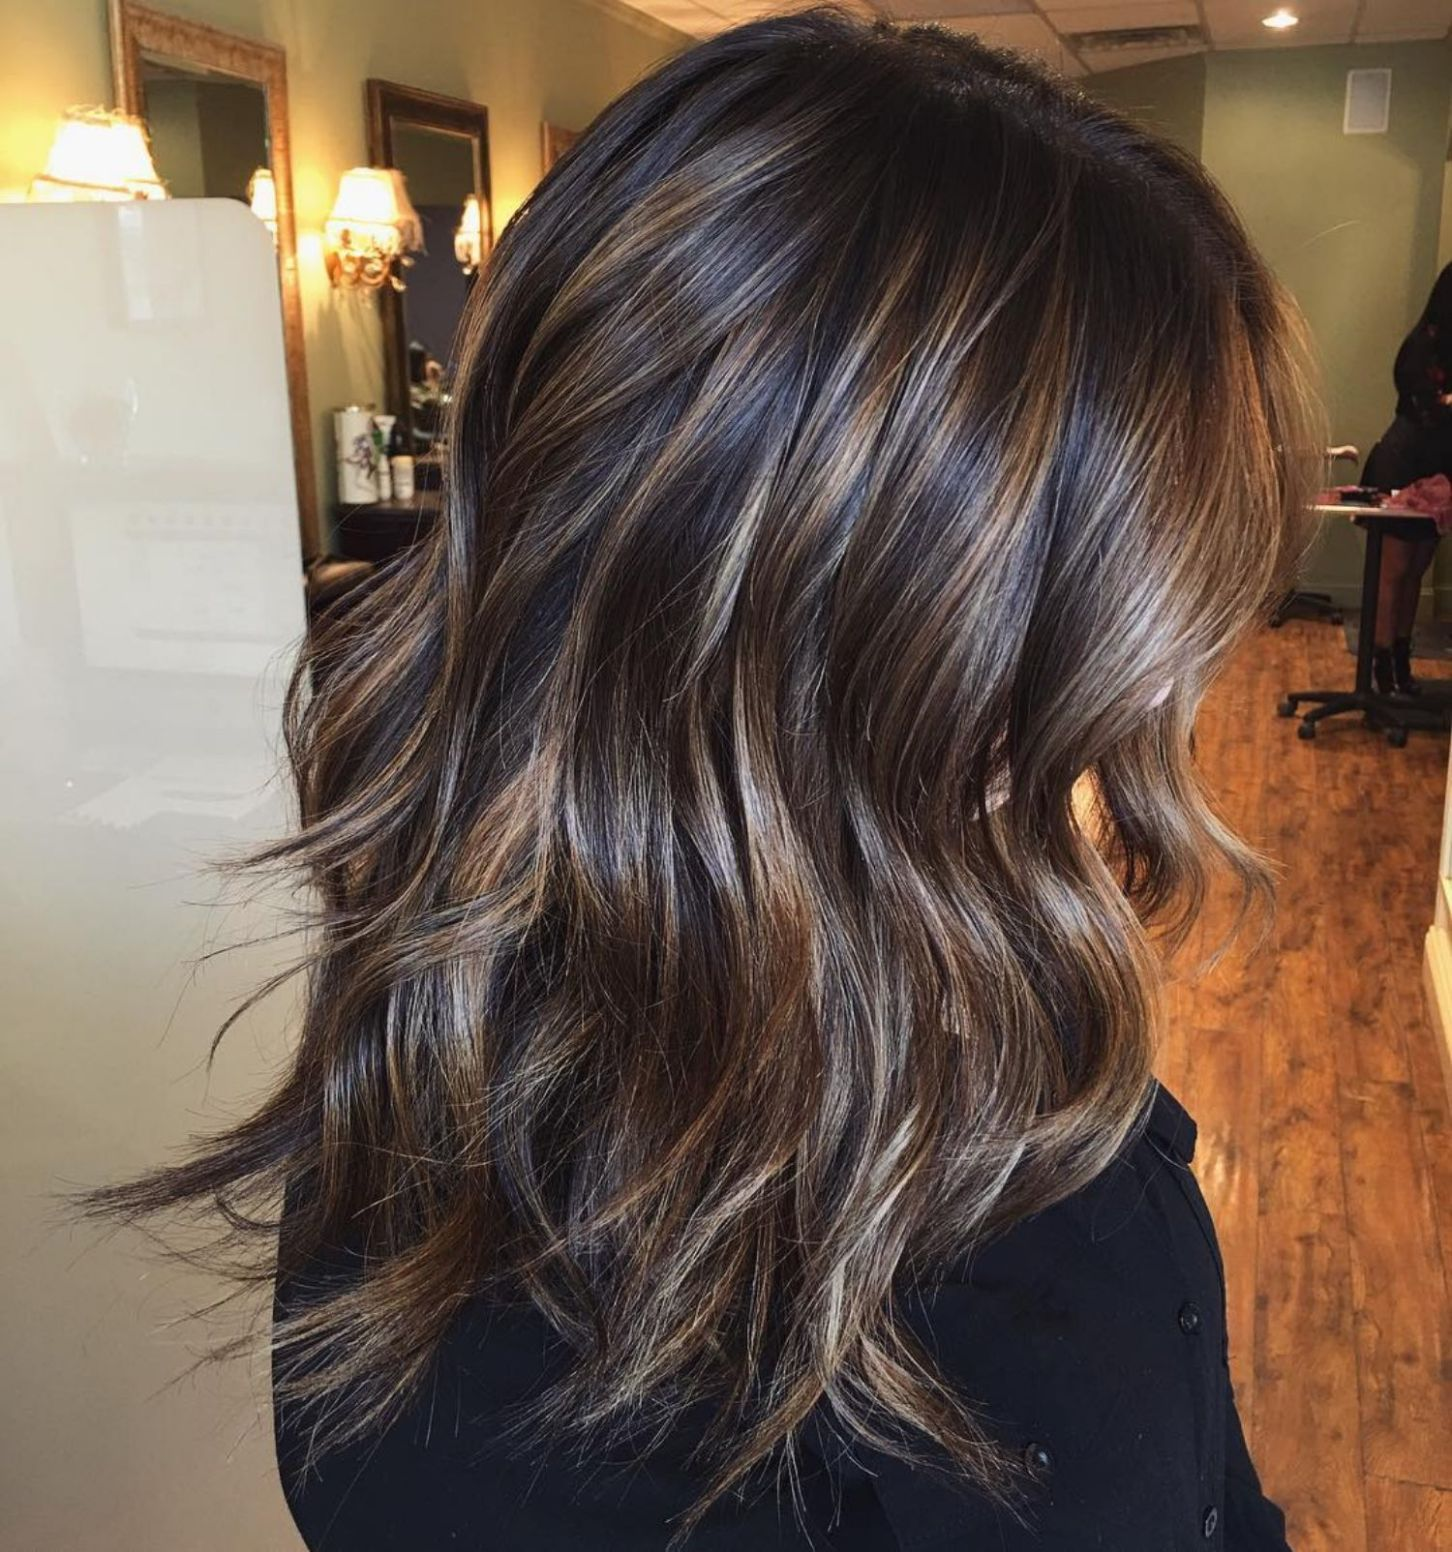 Winter Hair Color Ideas For Brunettes: 60 Chocolate Brown Hair Color Ideas For Brunettes